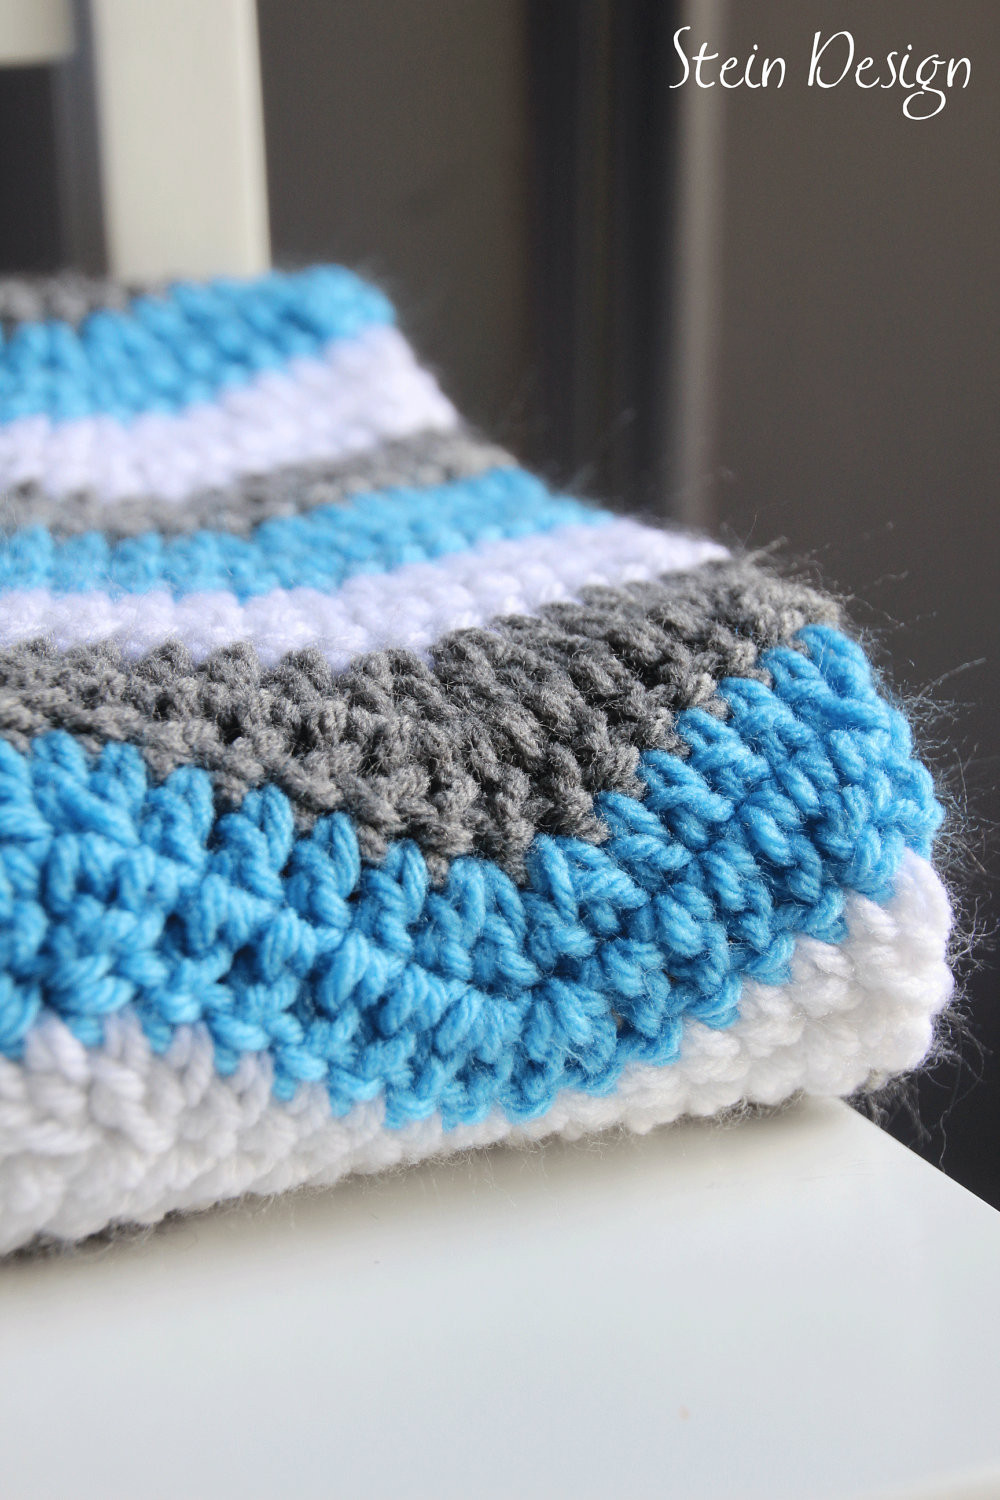 Baby Boy Crochet Blanket Patterns New Free Baby Boy Crochet Blanket Patterns Of Baby Boy Crochet Blanket Patterns Lovely Navy and Teal for A Baby Boy